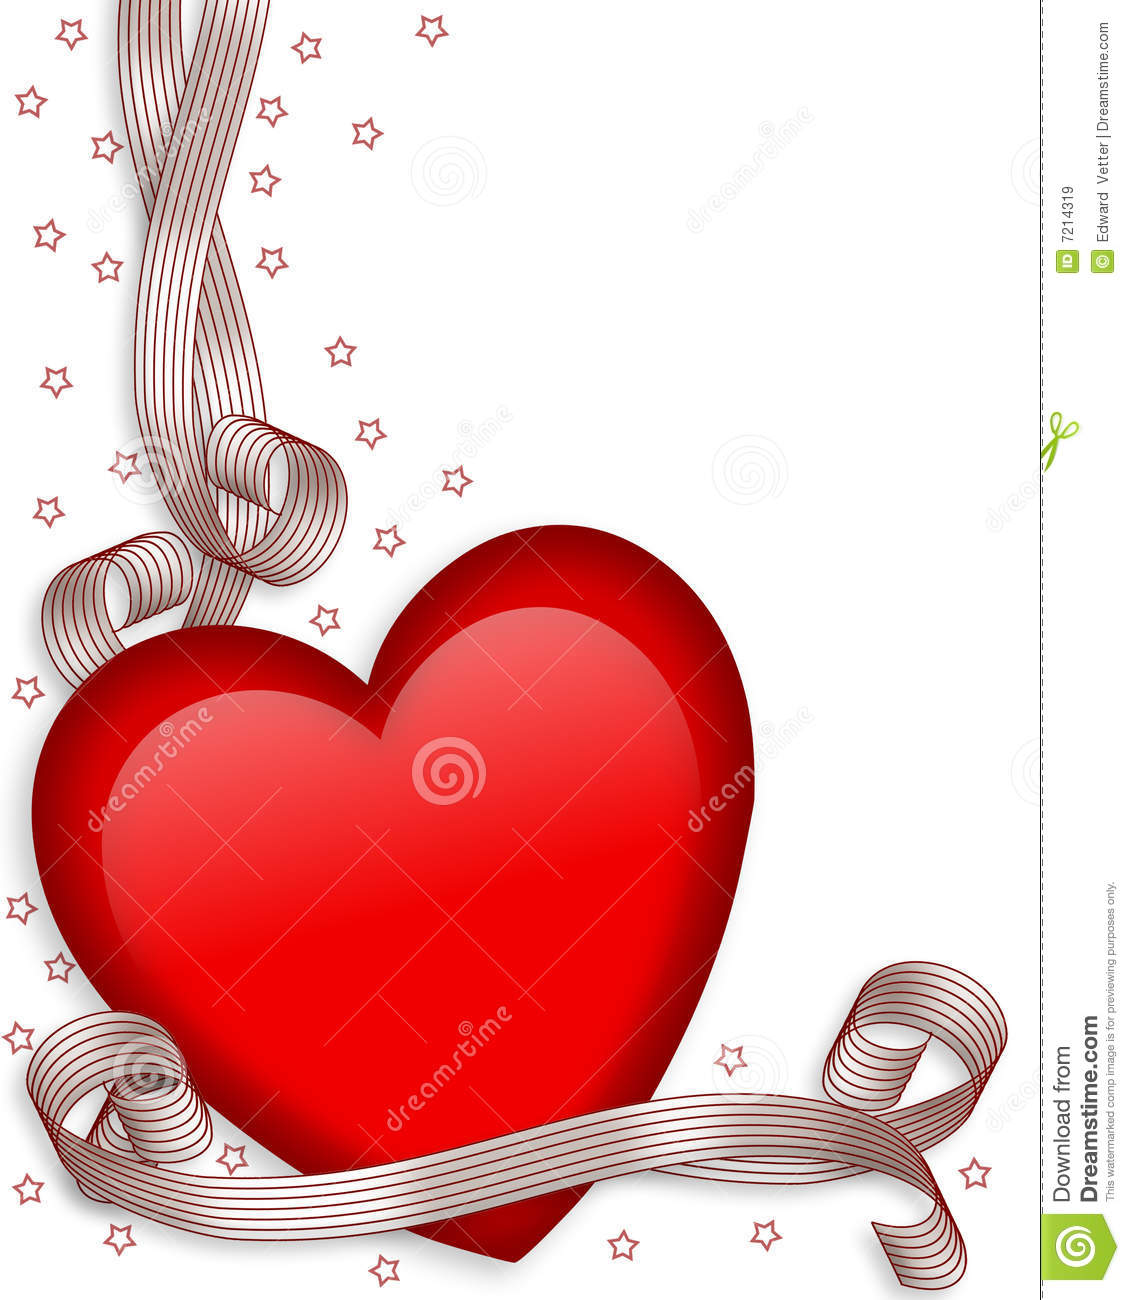 valentines day background clipart - photo #34